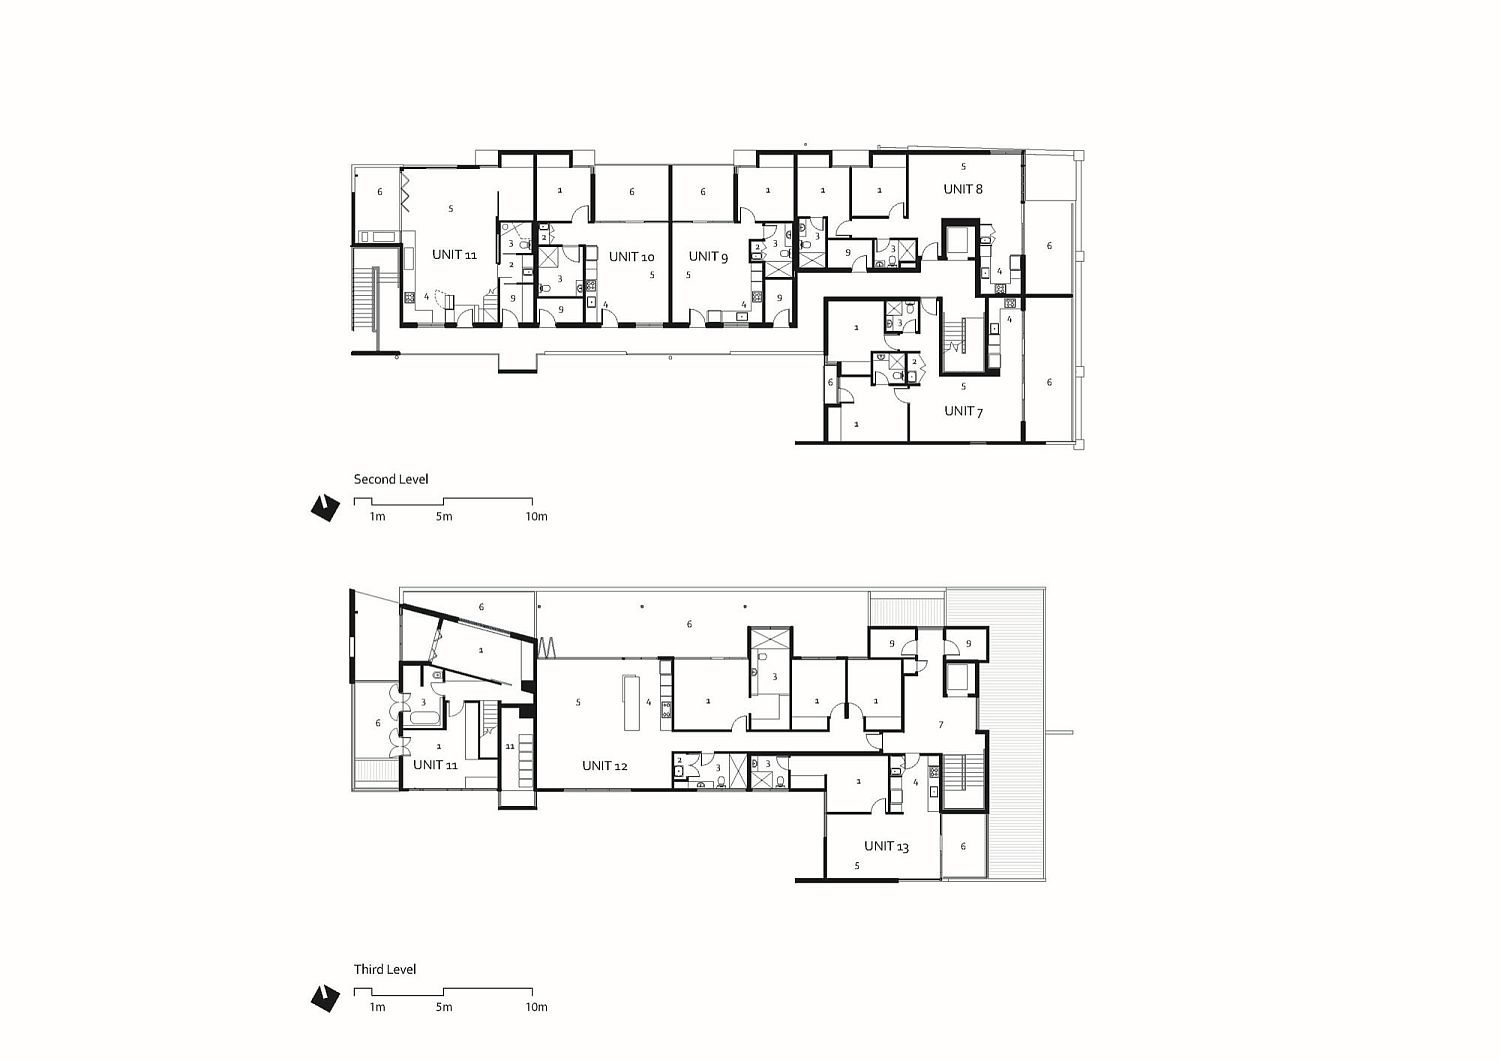 Third and fourth level floor plans of the revamped heritage building